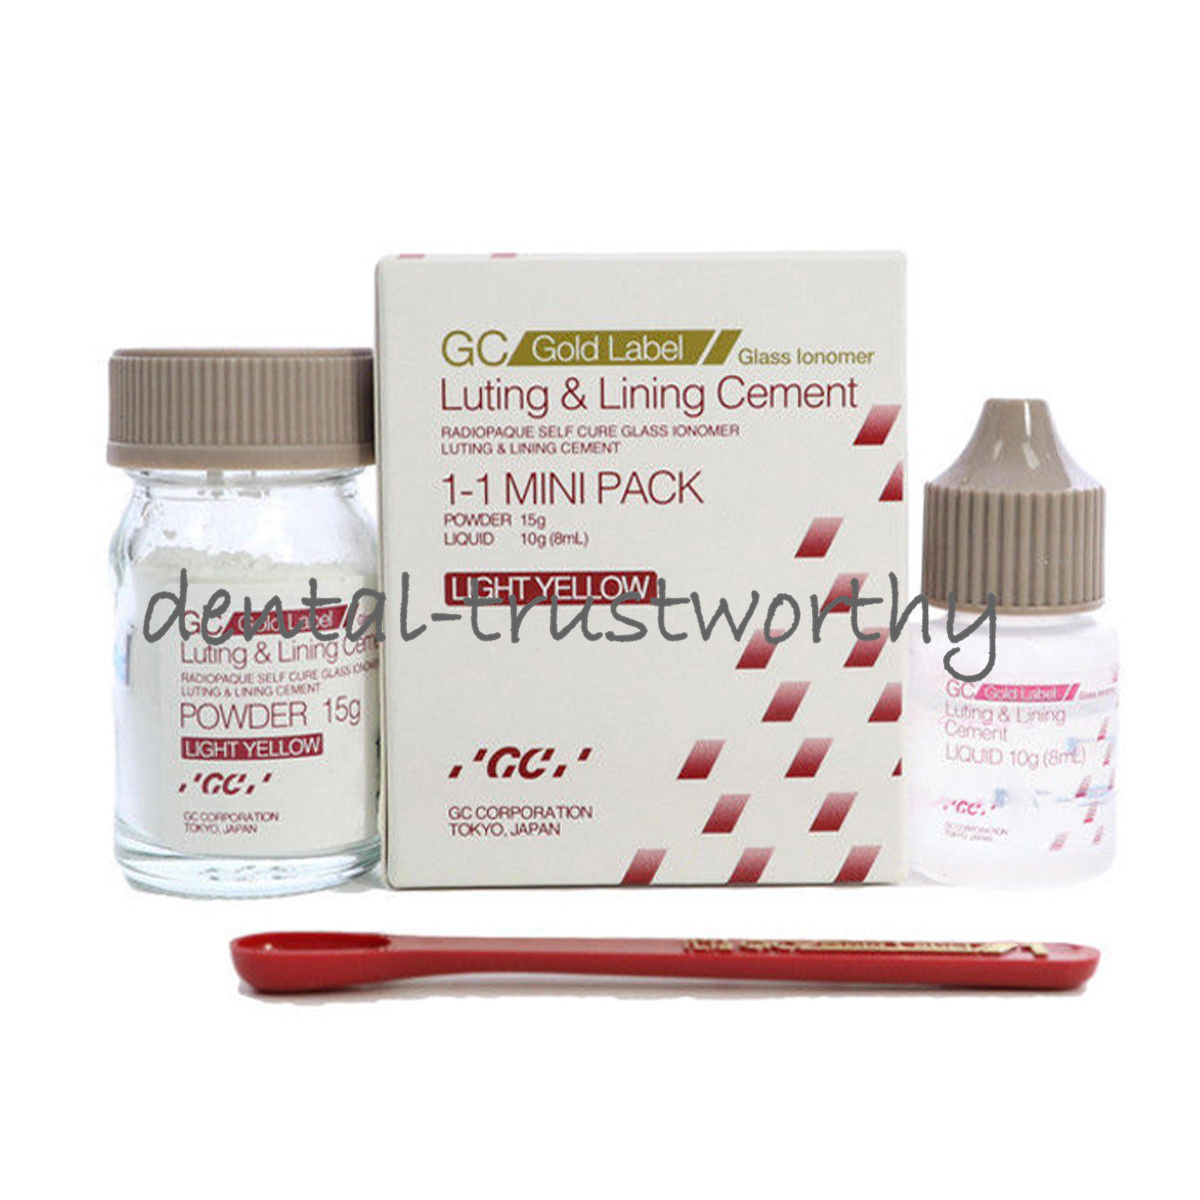 GC Fuji Gold Lable 1 Luting & Lining Glass Ionomer Dental